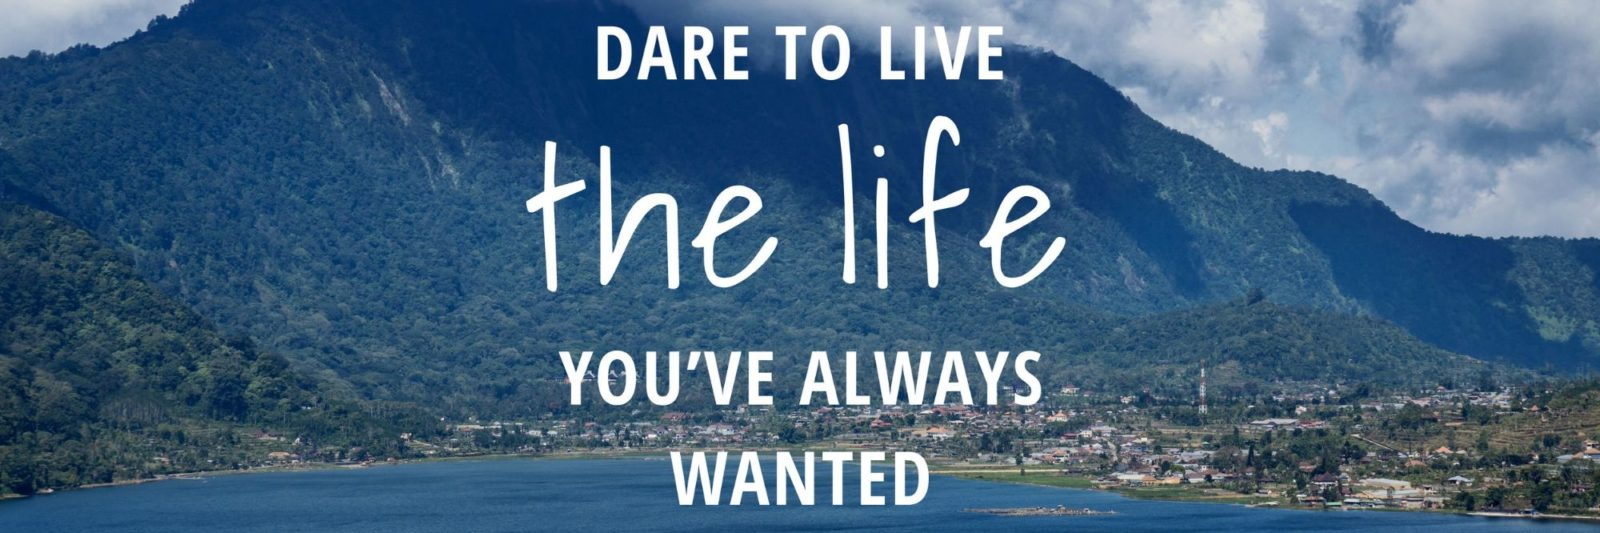 inspirational quotes dare to live